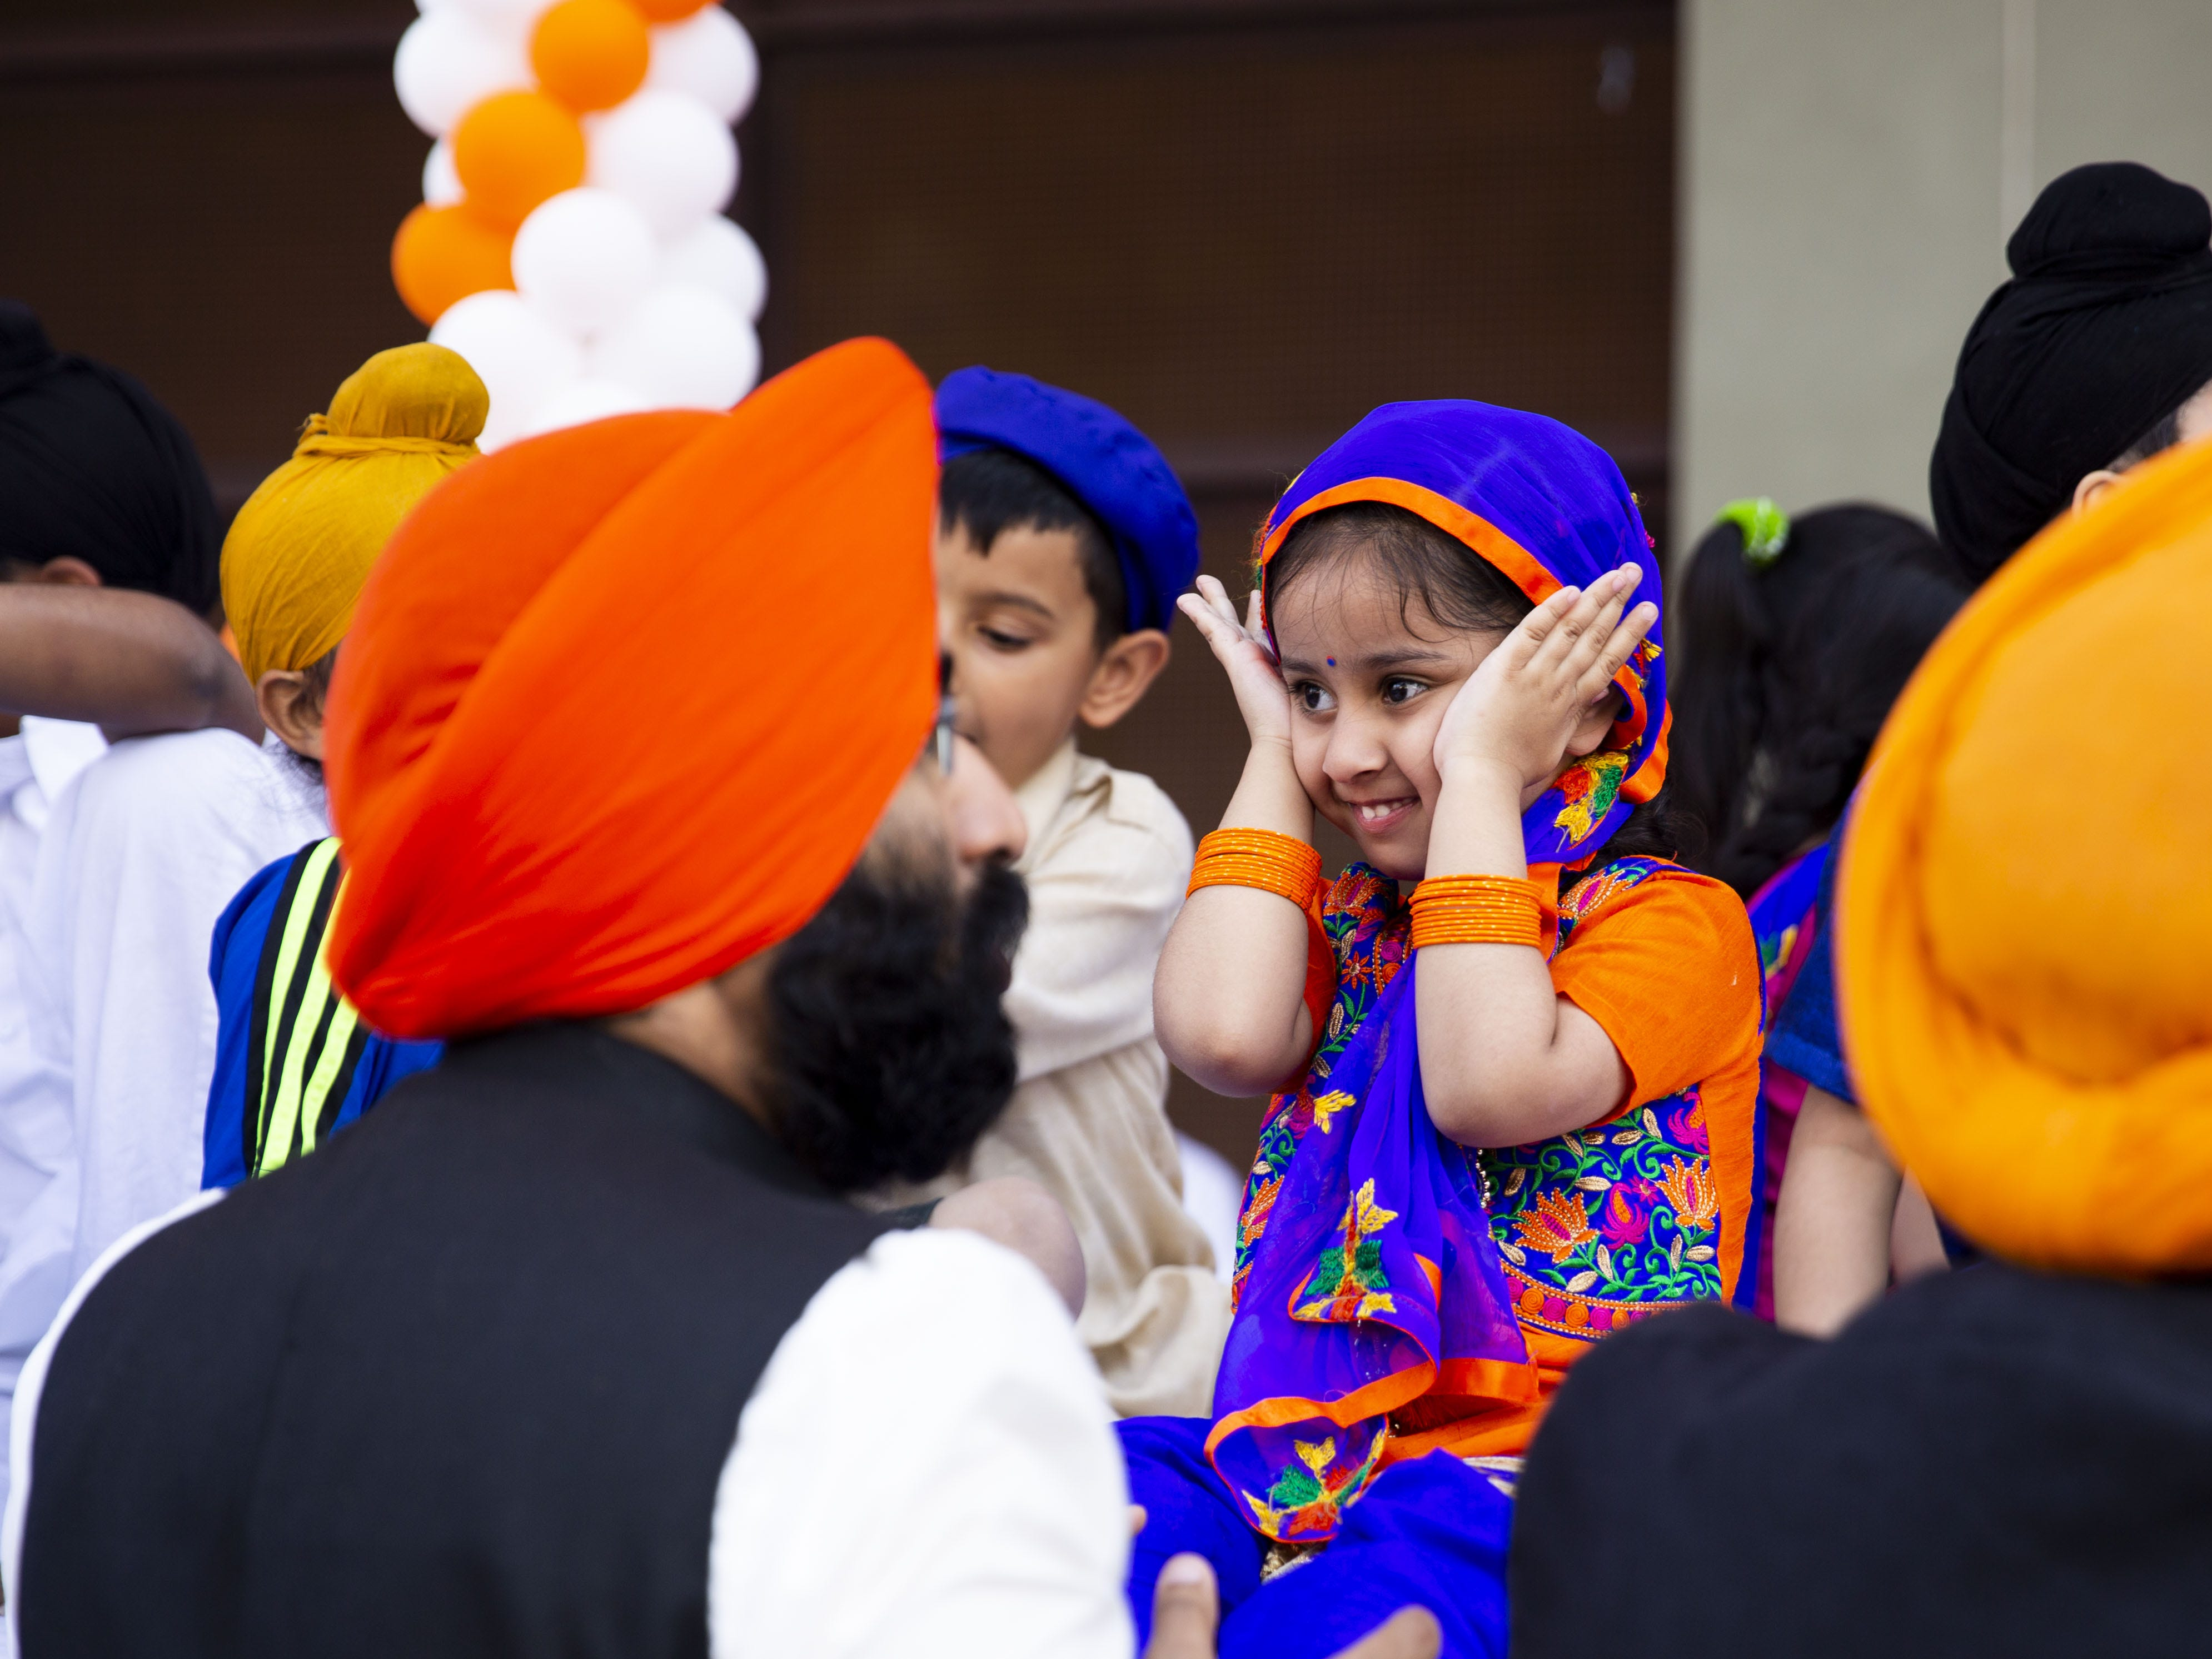 Harleen Kaur, 3, plays peek-a-boo with her father as they wait for the parade to start on March 24, 2019.